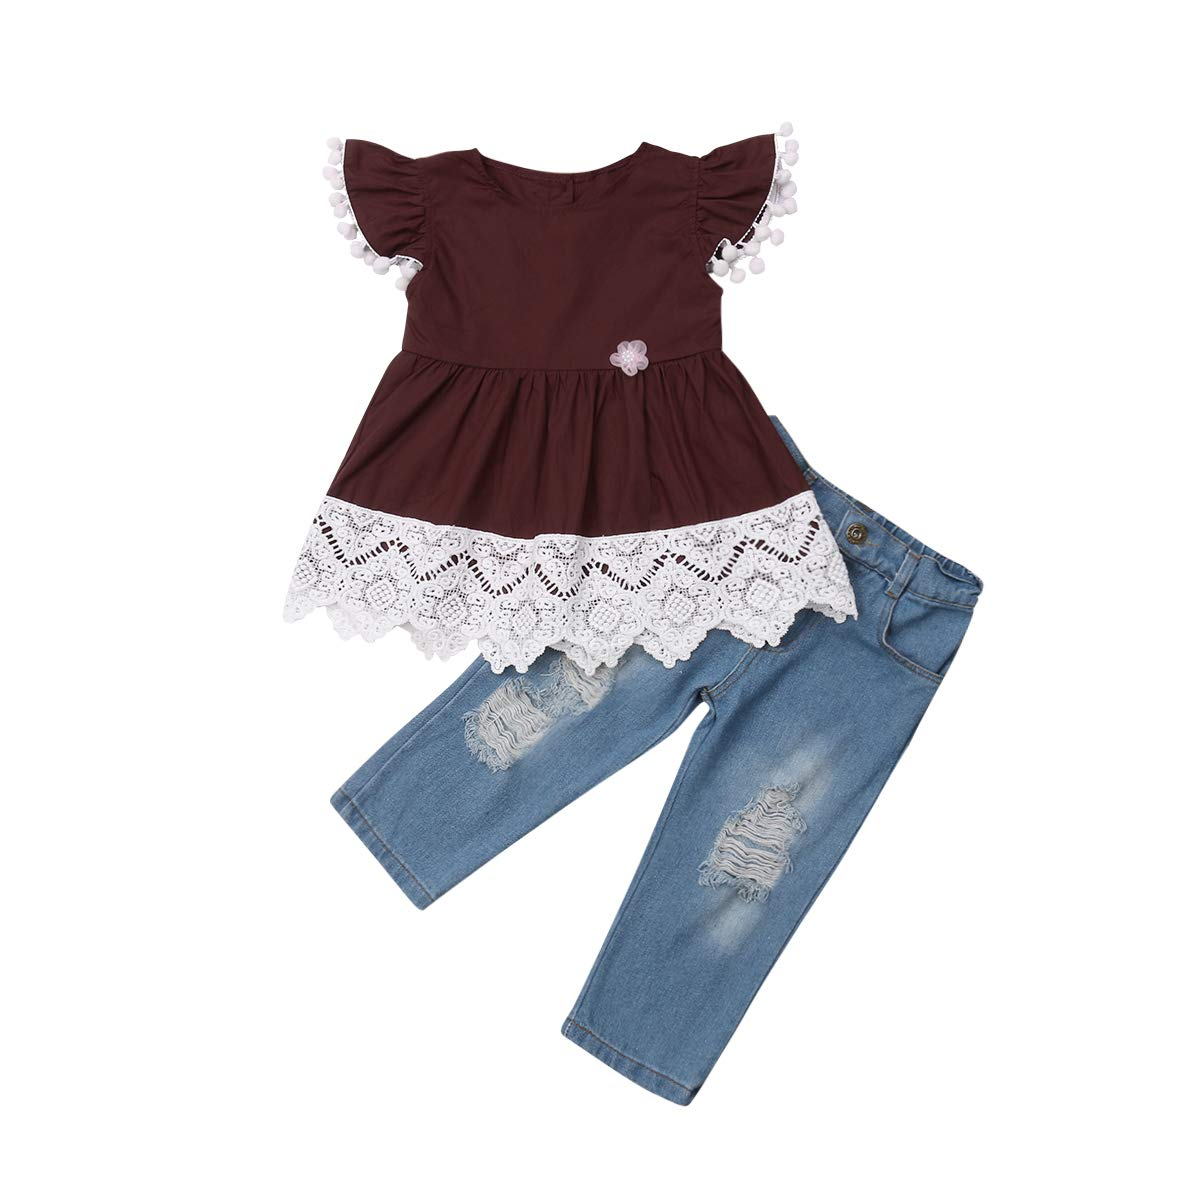 Little Girls Ruffle Short Sleeve Outfits Set Lace Top Dress and Demin Pants Fall Winter Clothes